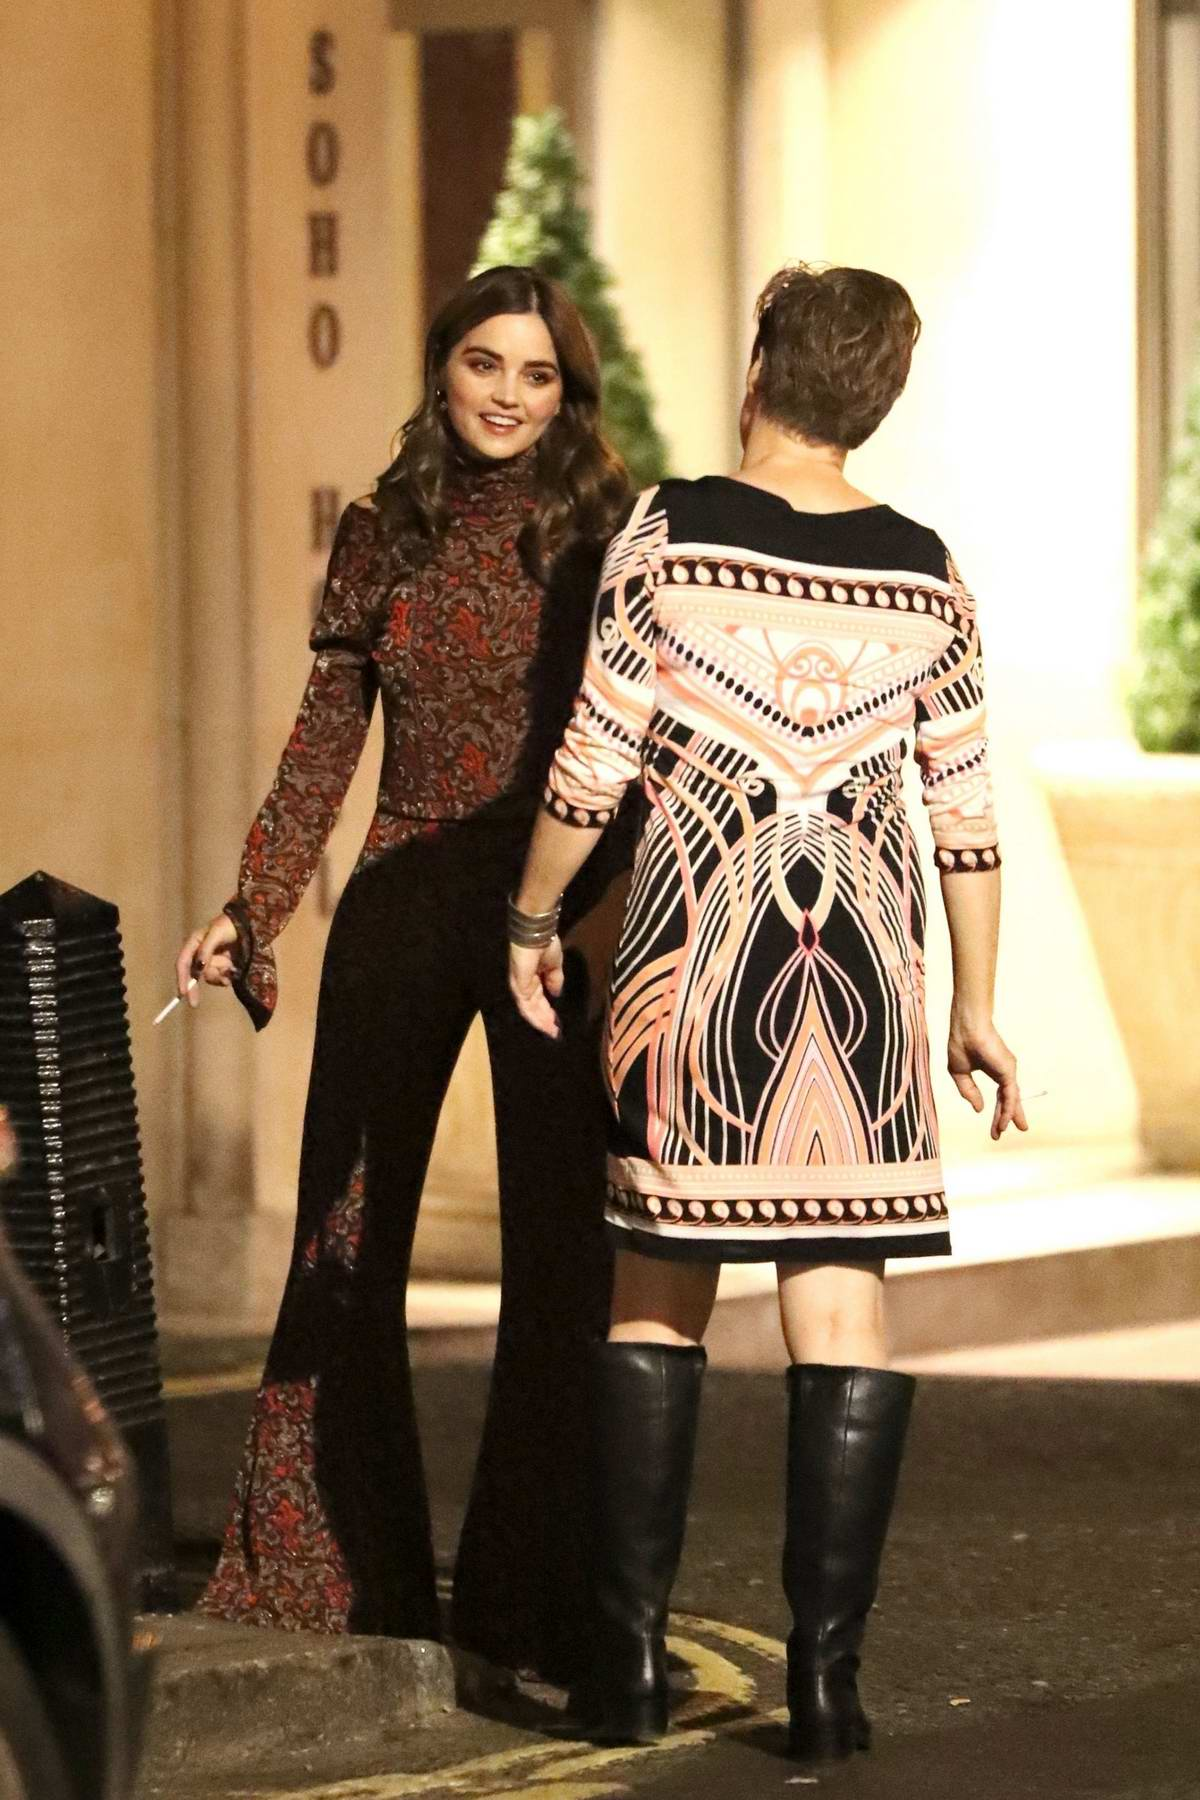 Jenna Coleman seen chatting with fans outside Soho Hotel in London, UK